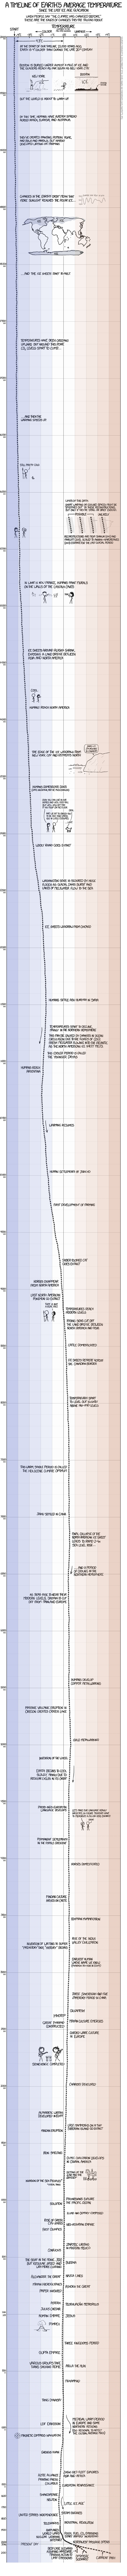 Found on xkcd. I hope it is not a repost